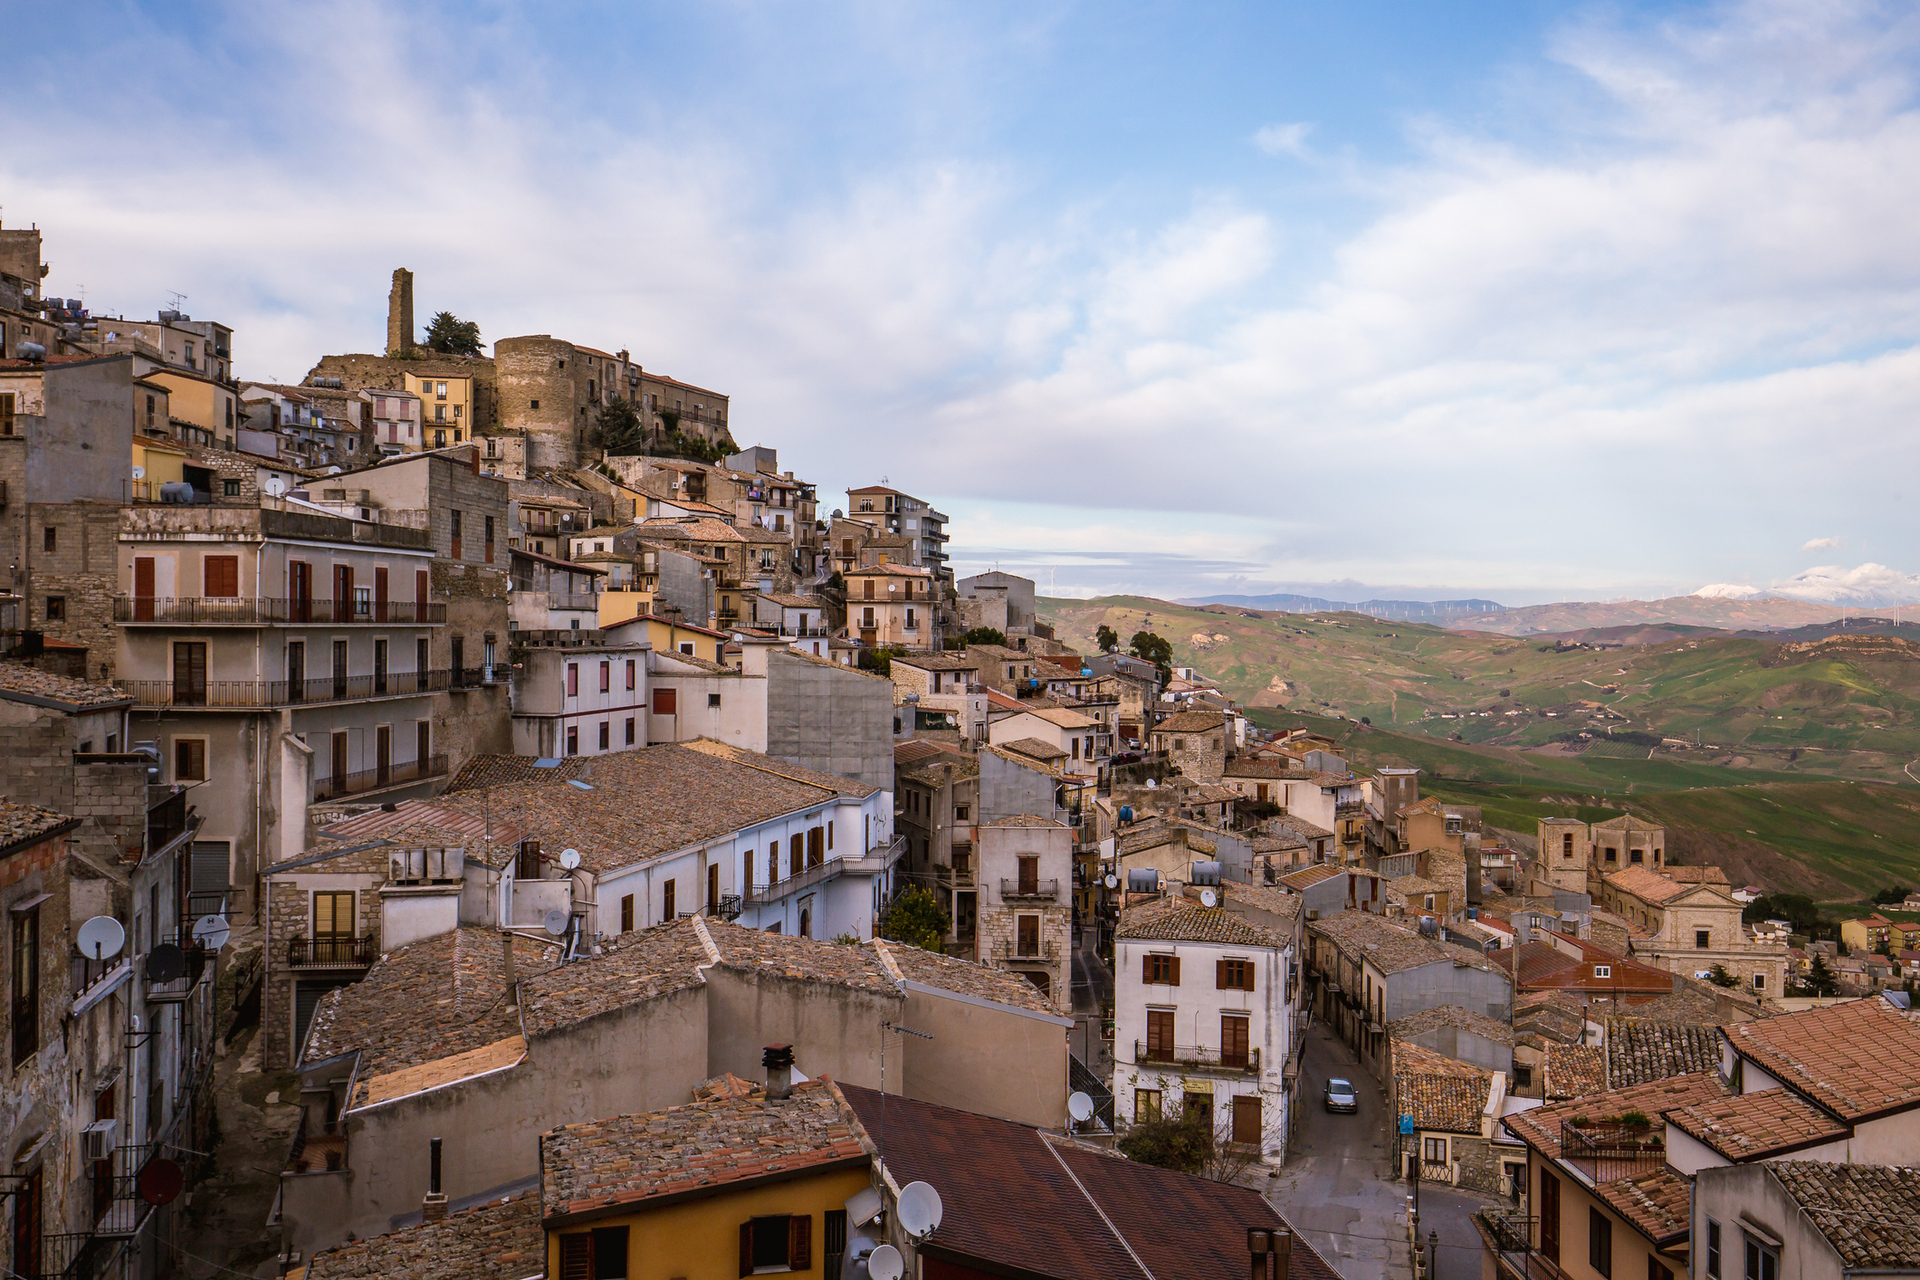 Want a free house? This Italian town will give you one if you move